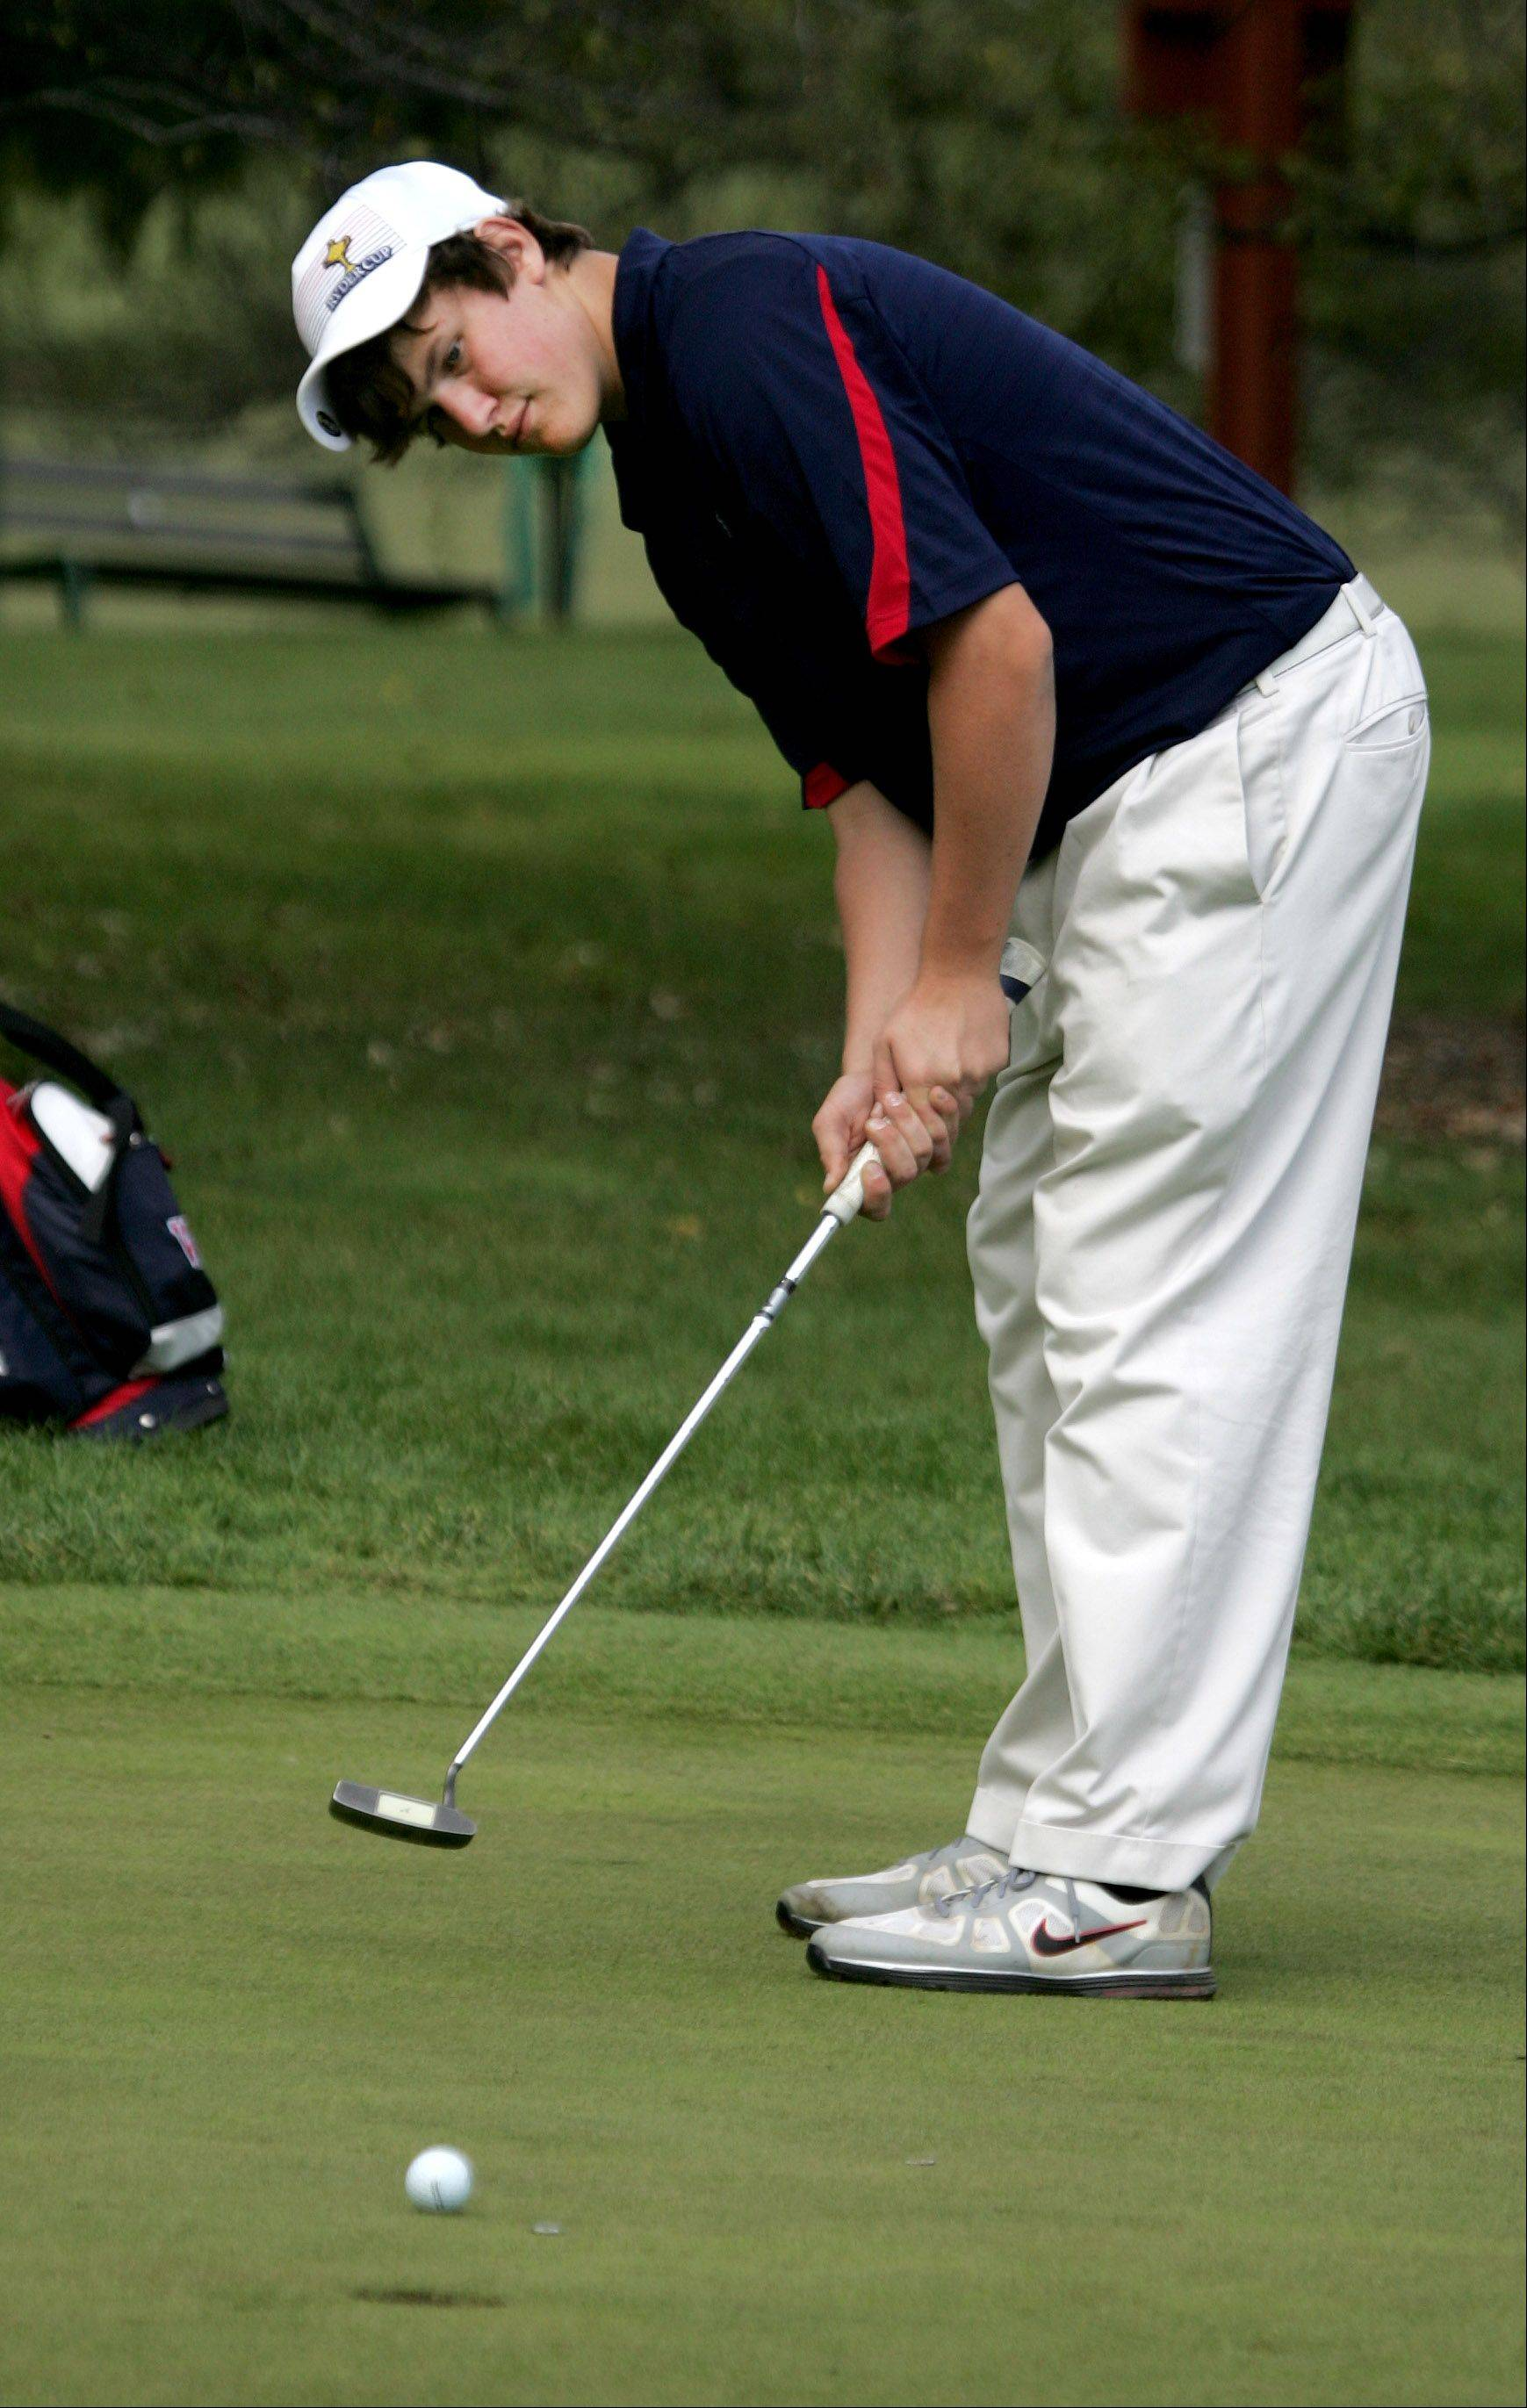 Blake Kauffmann of West Aurora watches his putt on the 18th green during DuPage Valley Conference boys golf at Bartlett Hills Golf course on Thursday.